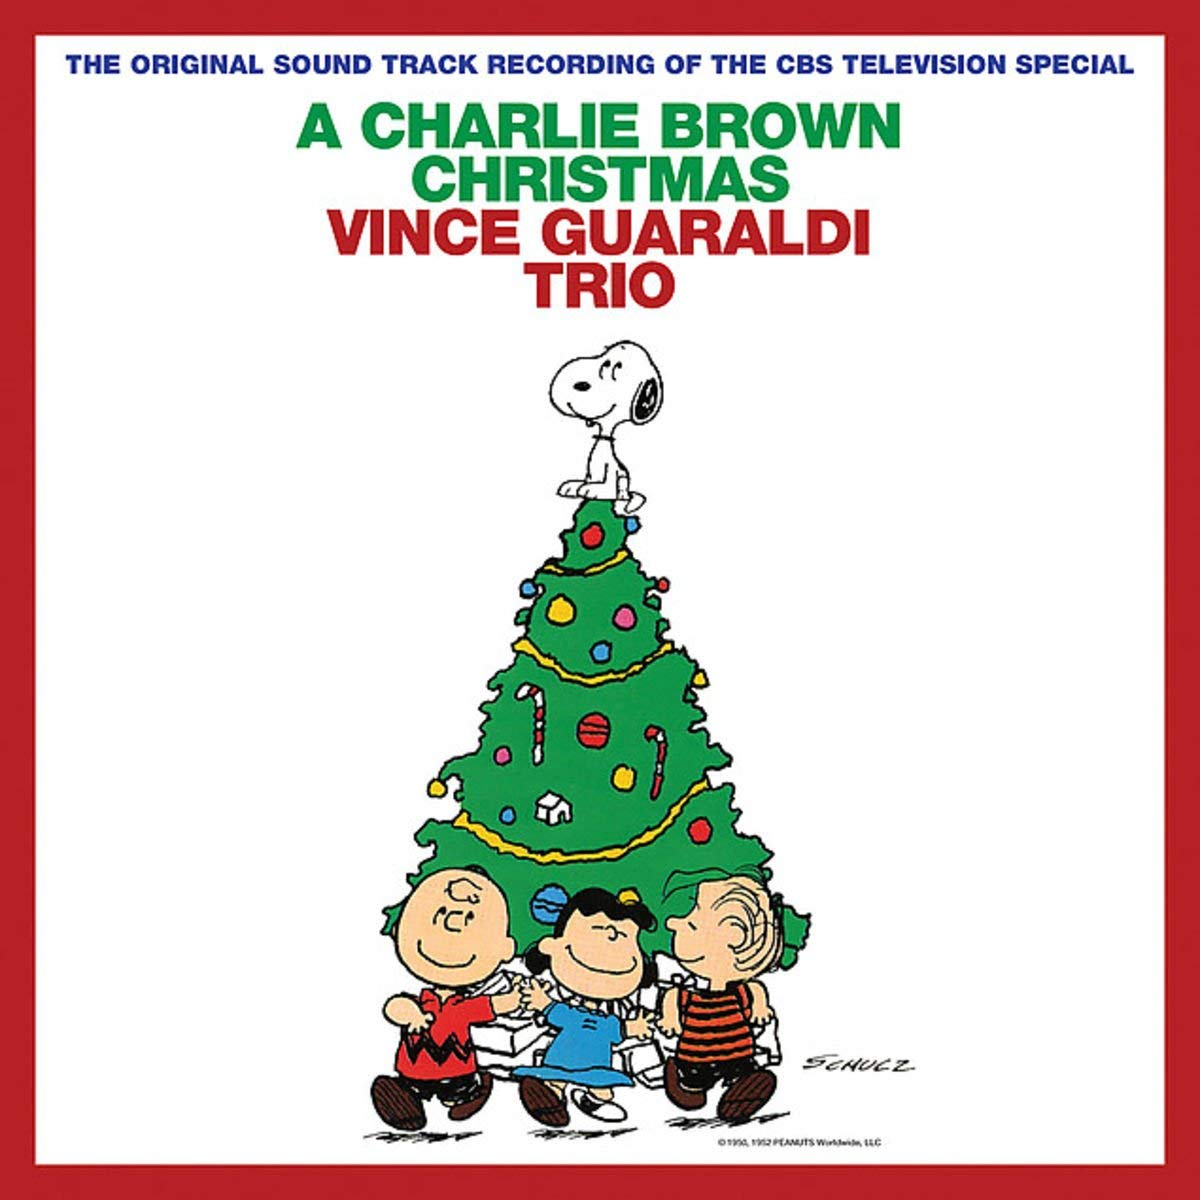 A Charlie Brown Christmas – Vince Guaraldi Trio